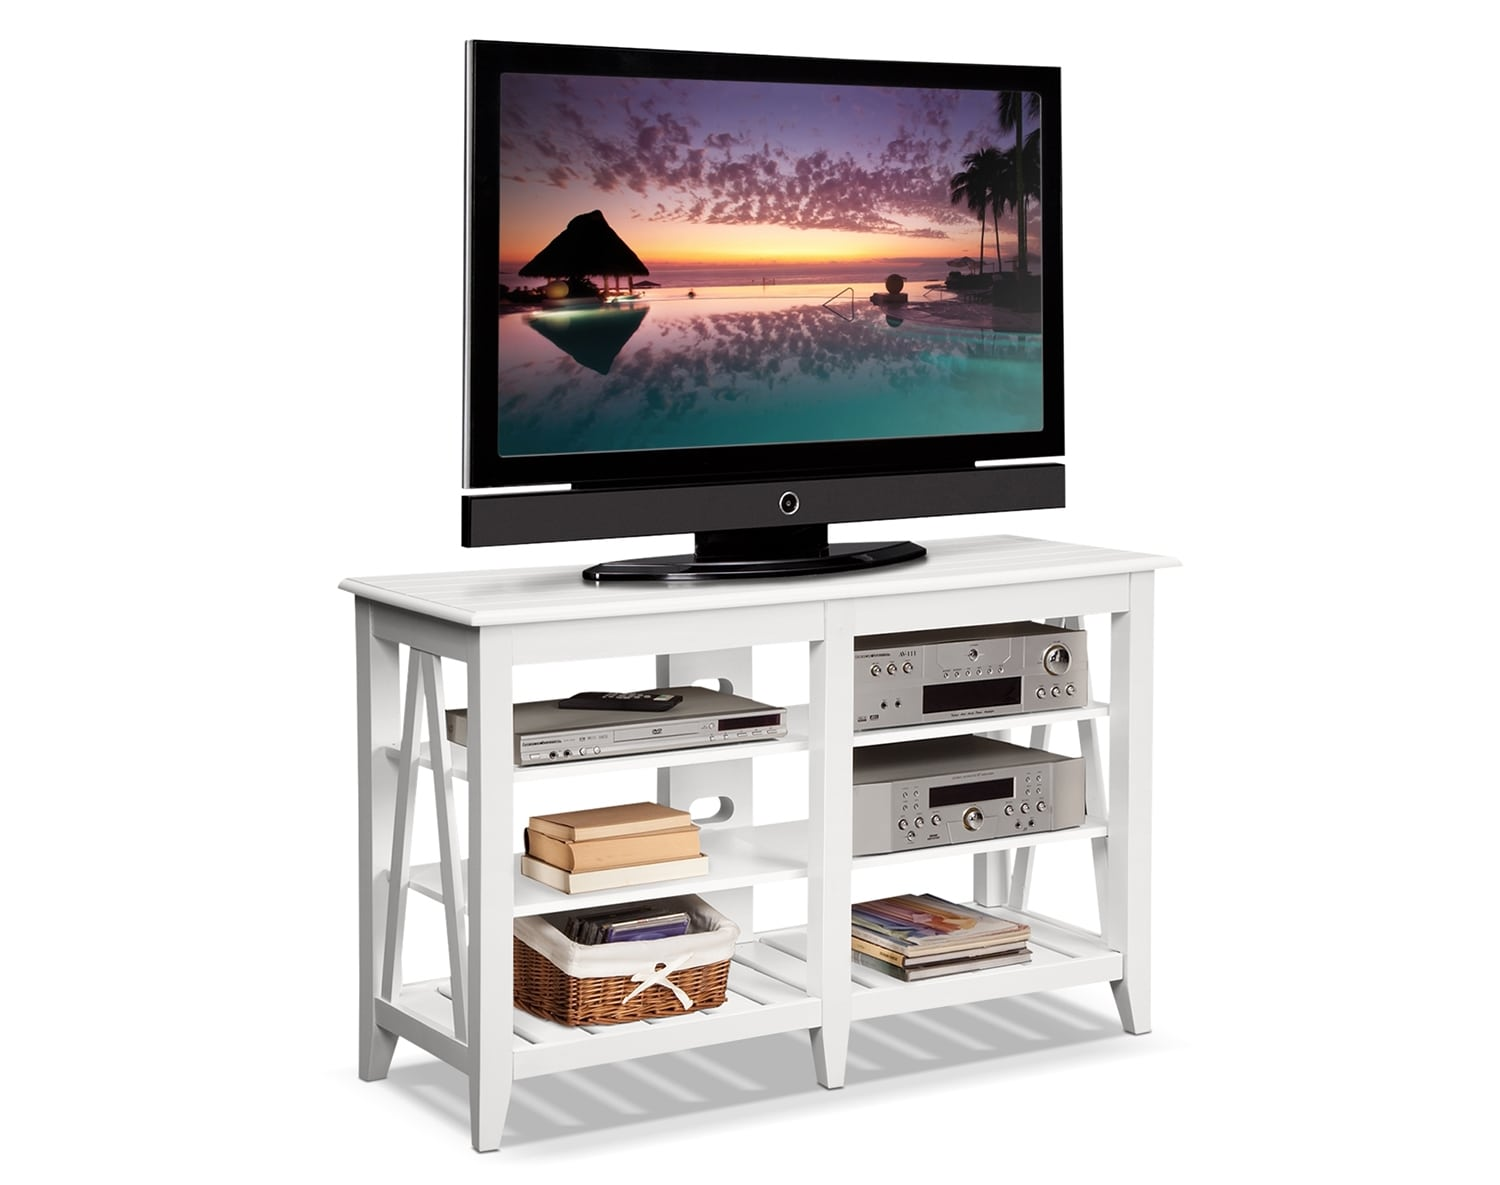 375537 the plantation cove coastal tv stand collection american  at mifinder.co